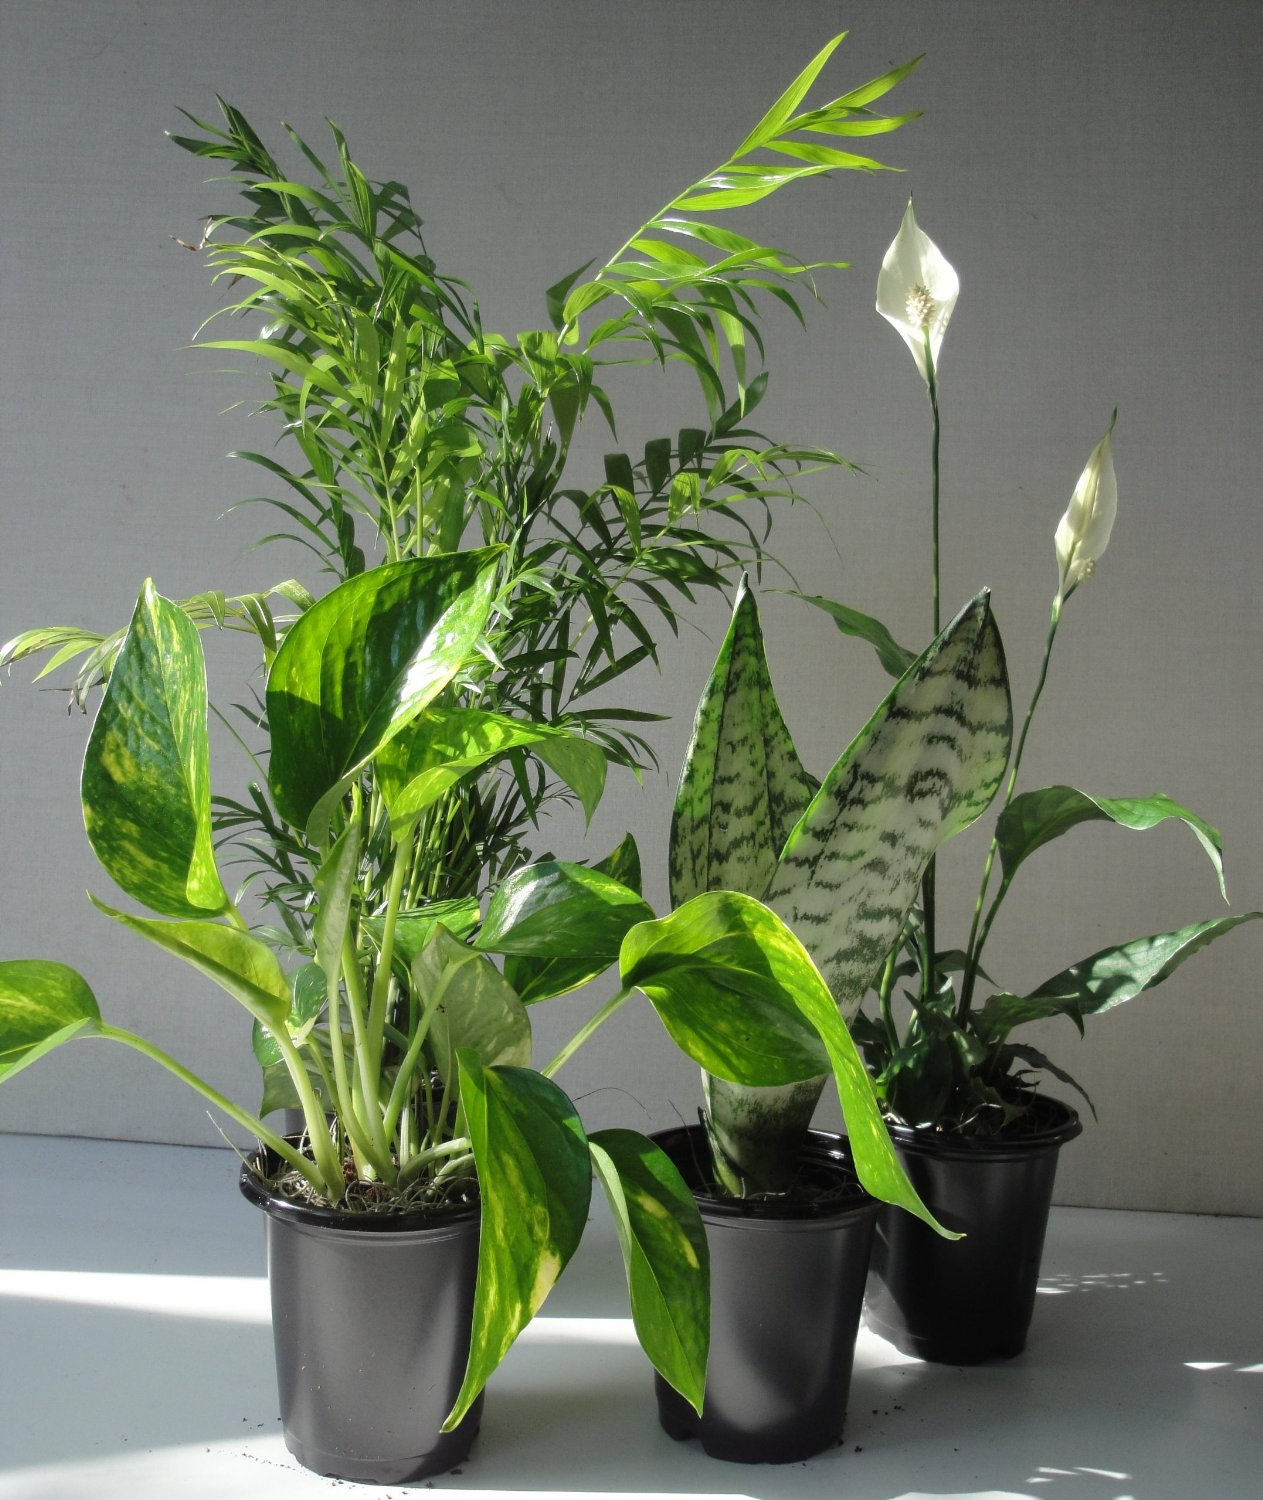 Popular Bedroom Plants - South Africa